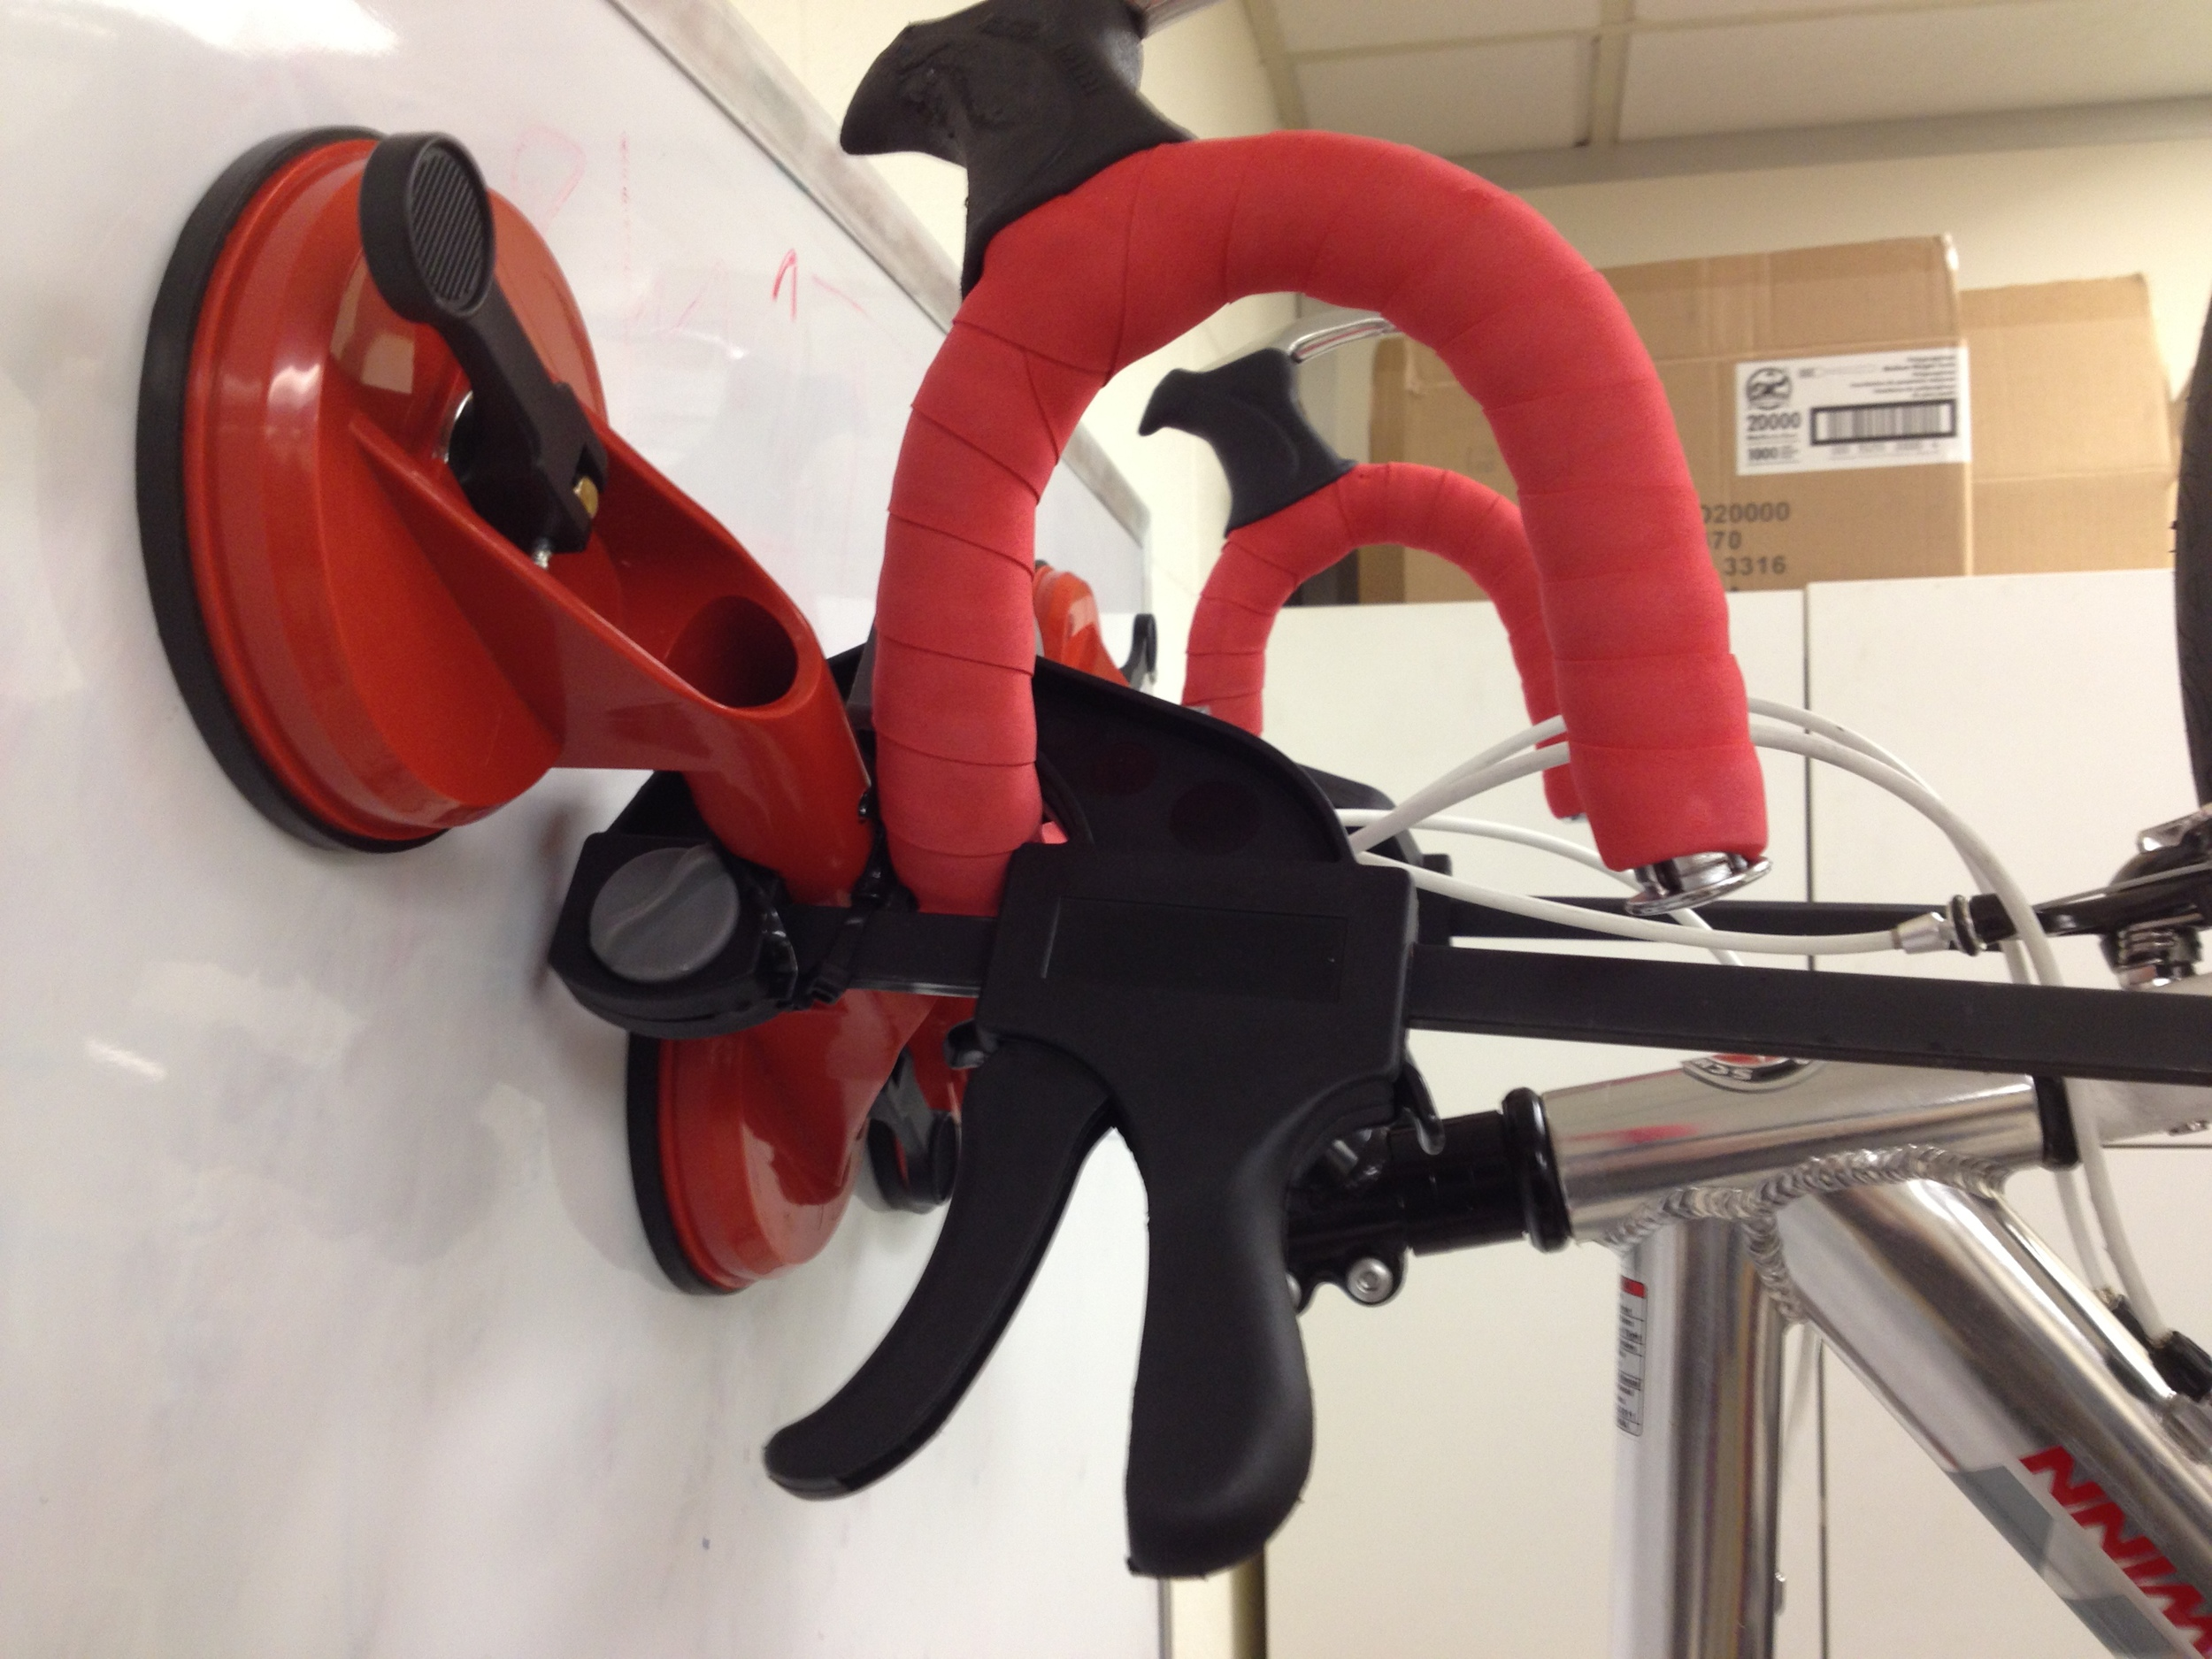 The early suction clamp mounting a bike to a whiteboard